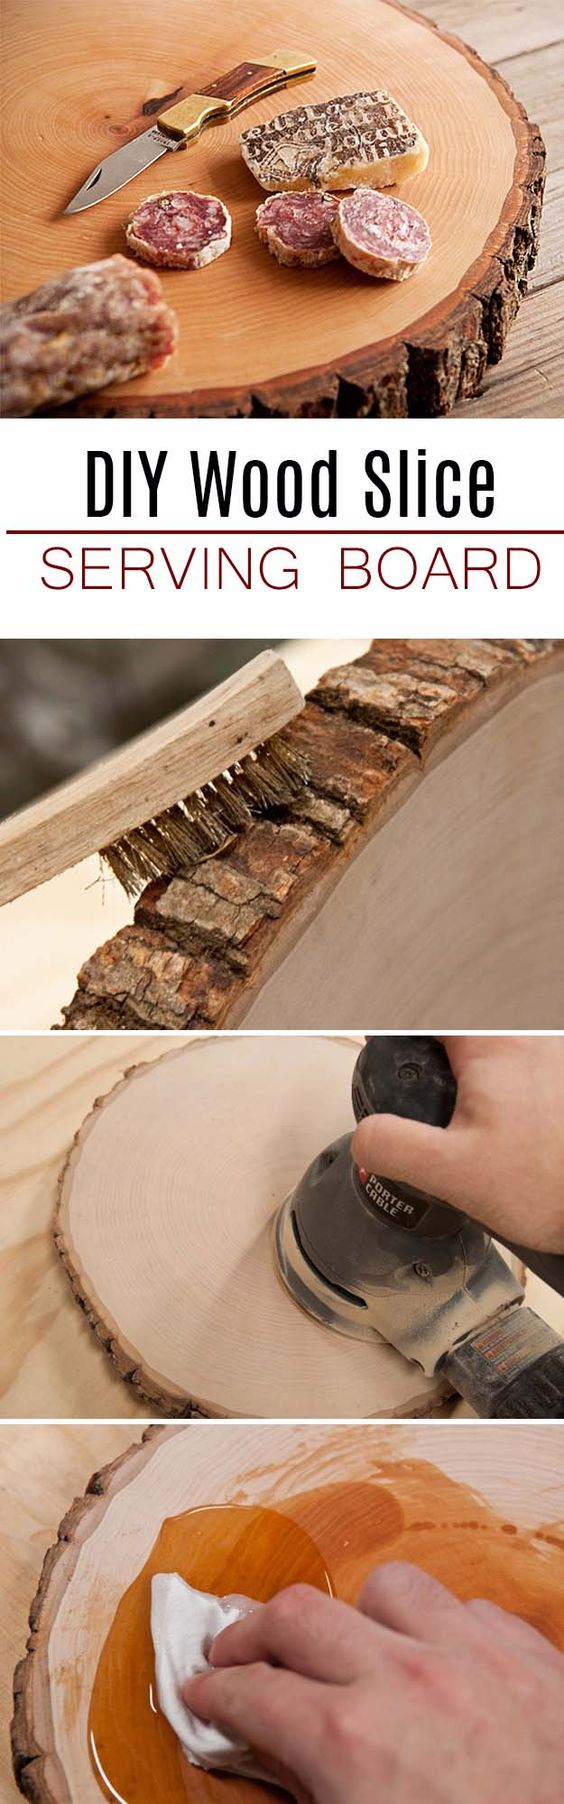 DIY Gifts For Men | Awesome Ideas for Your Boyfriend, Husband, Dad - Father , Brother and all the other important guys in your life. Cool Homemade DIY Crafts Men Will Truly Love to Receive for Christmas, Birthdays, Anniversaries and Valentine's Day | Wood Slice Serving Board for Him | http://diyjoy.com/diy-gifts-for-men-pinterest: